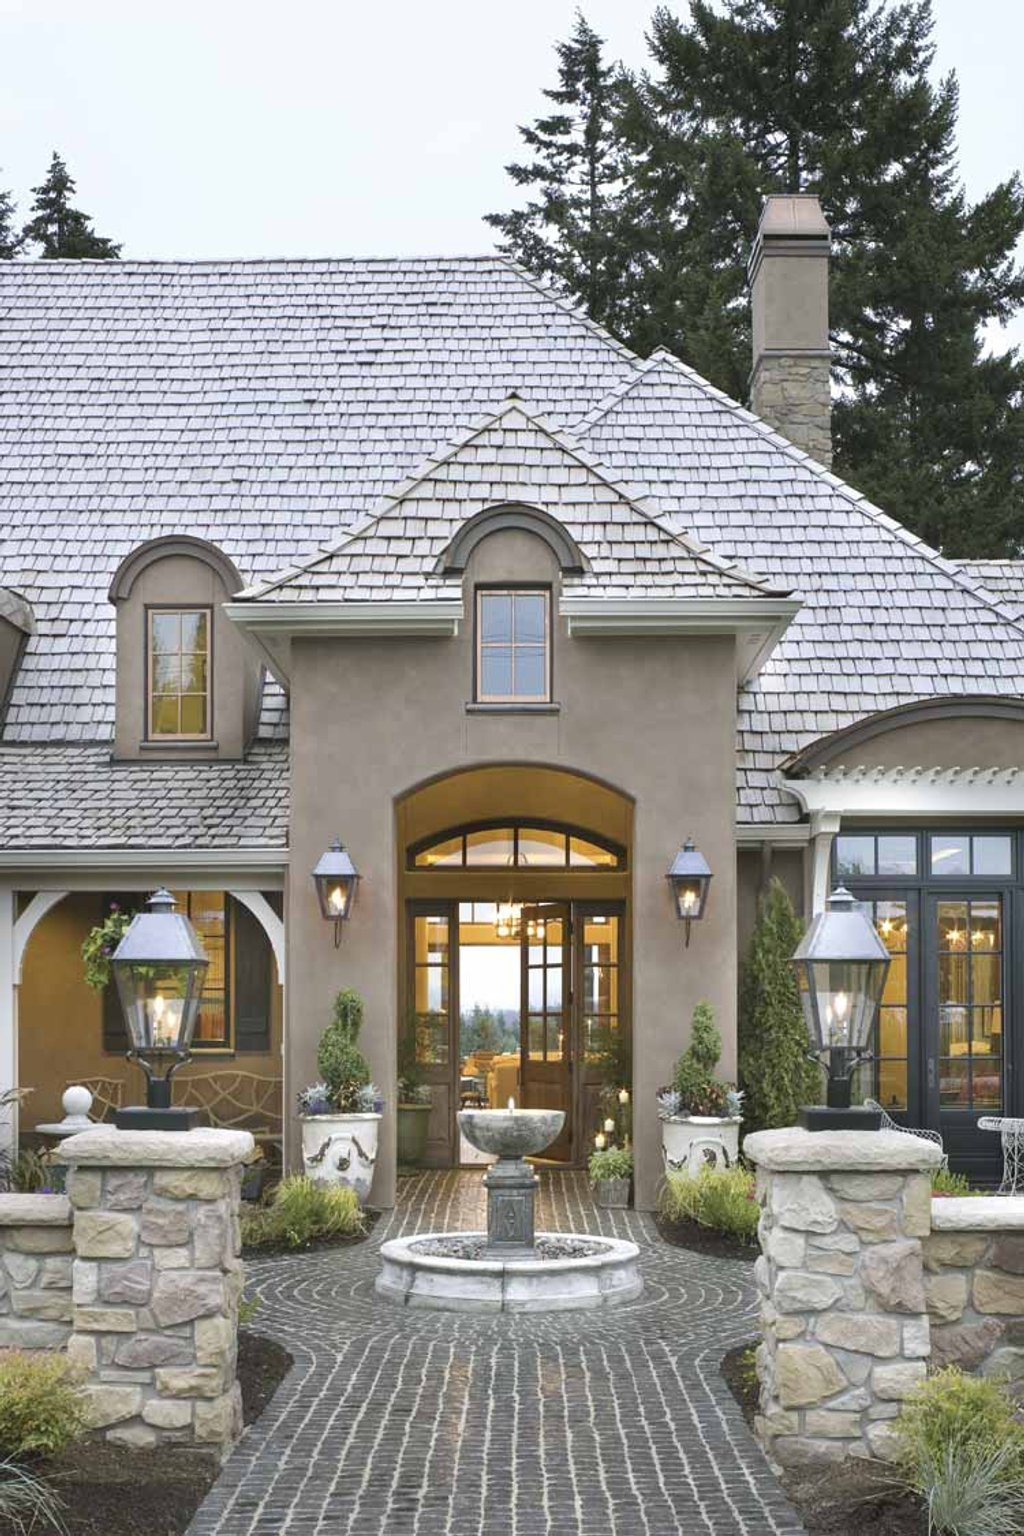 European style house plan 4 beds 3 5 baths 4352 sq ft for Www eplans